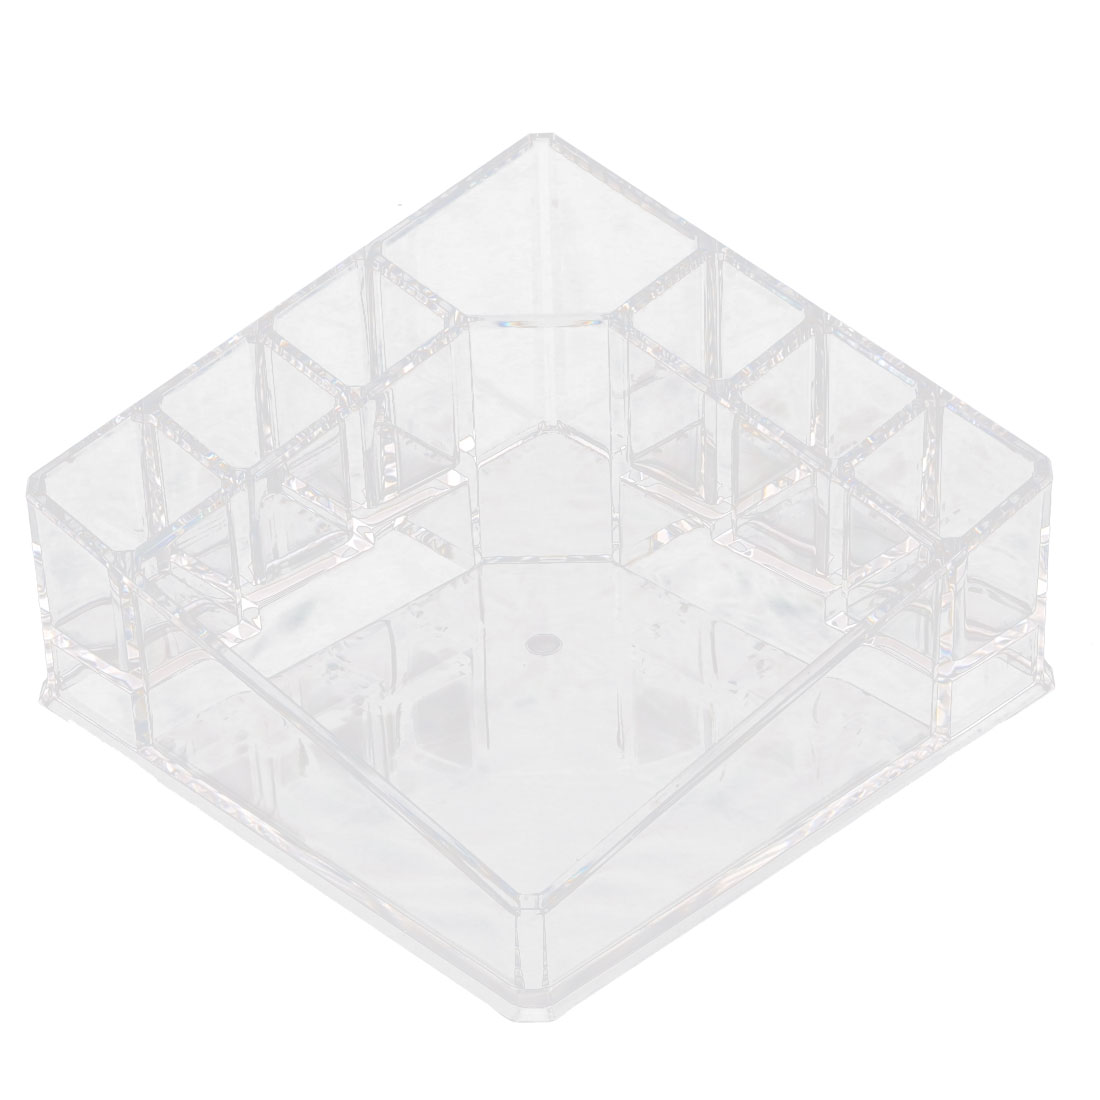 Acrylic 8 Compartments Makeup Tool Storage Holder Jewelry Box Organizer Clear